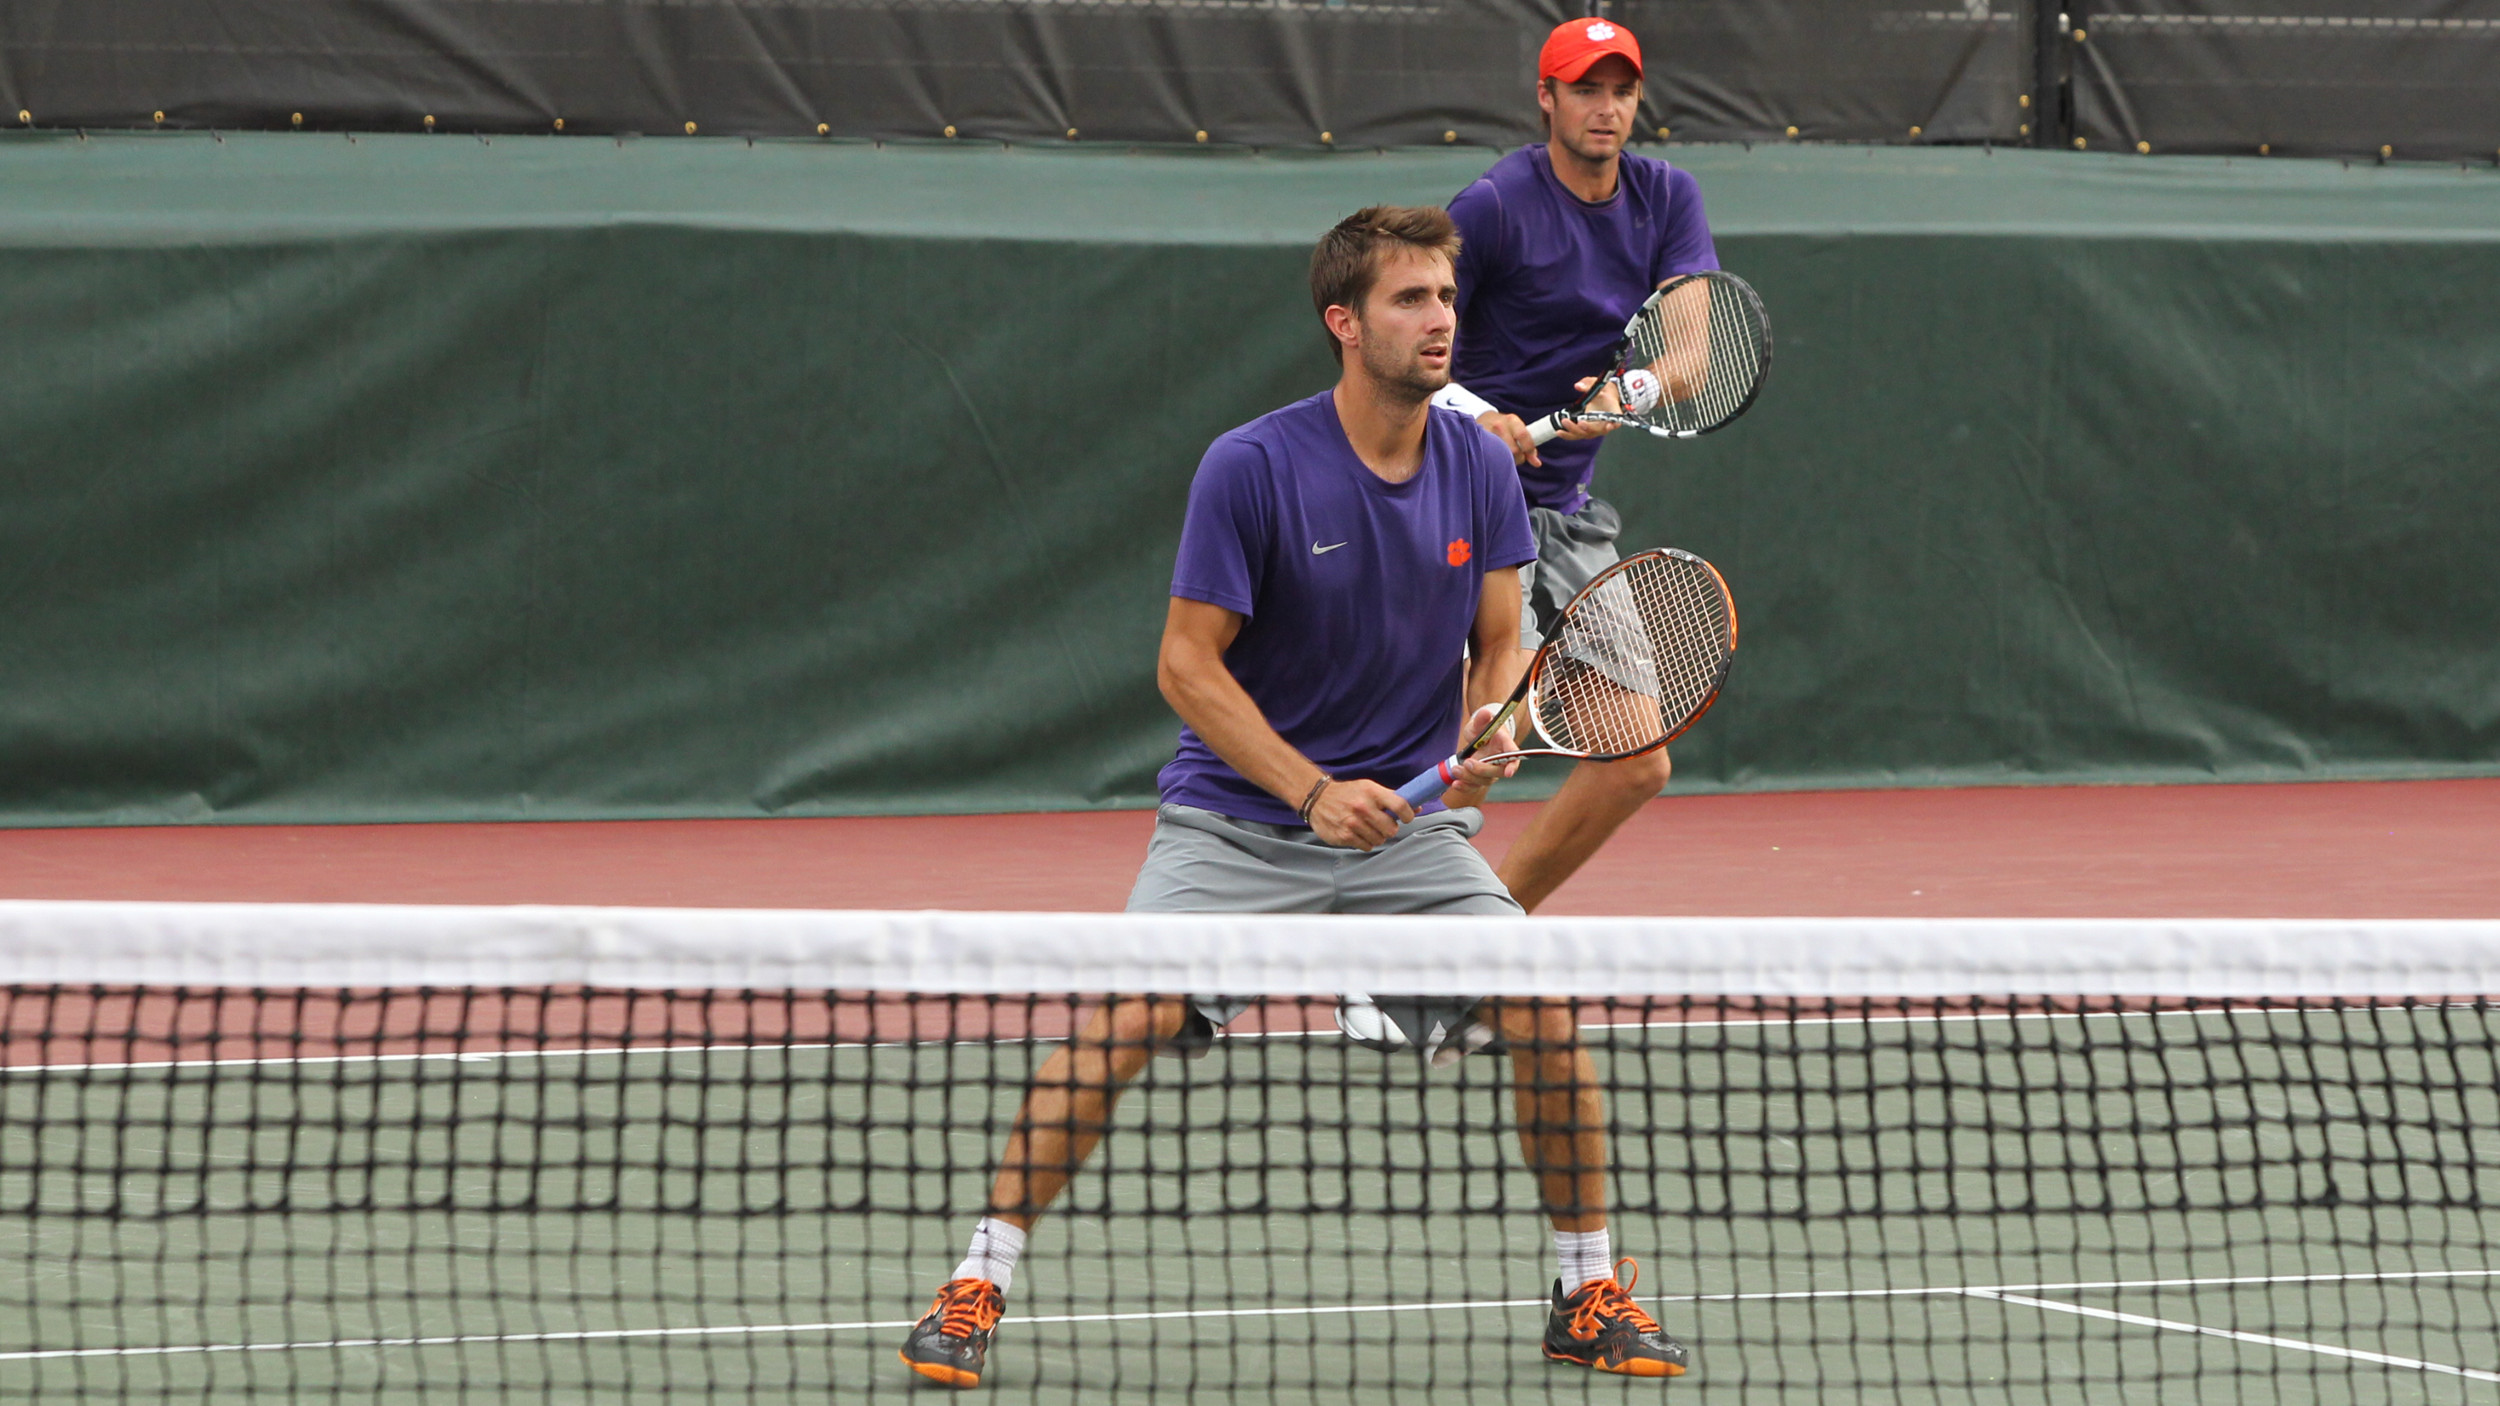 Harrington & Maden's NCAA Doubles Run Ends in Semifinals